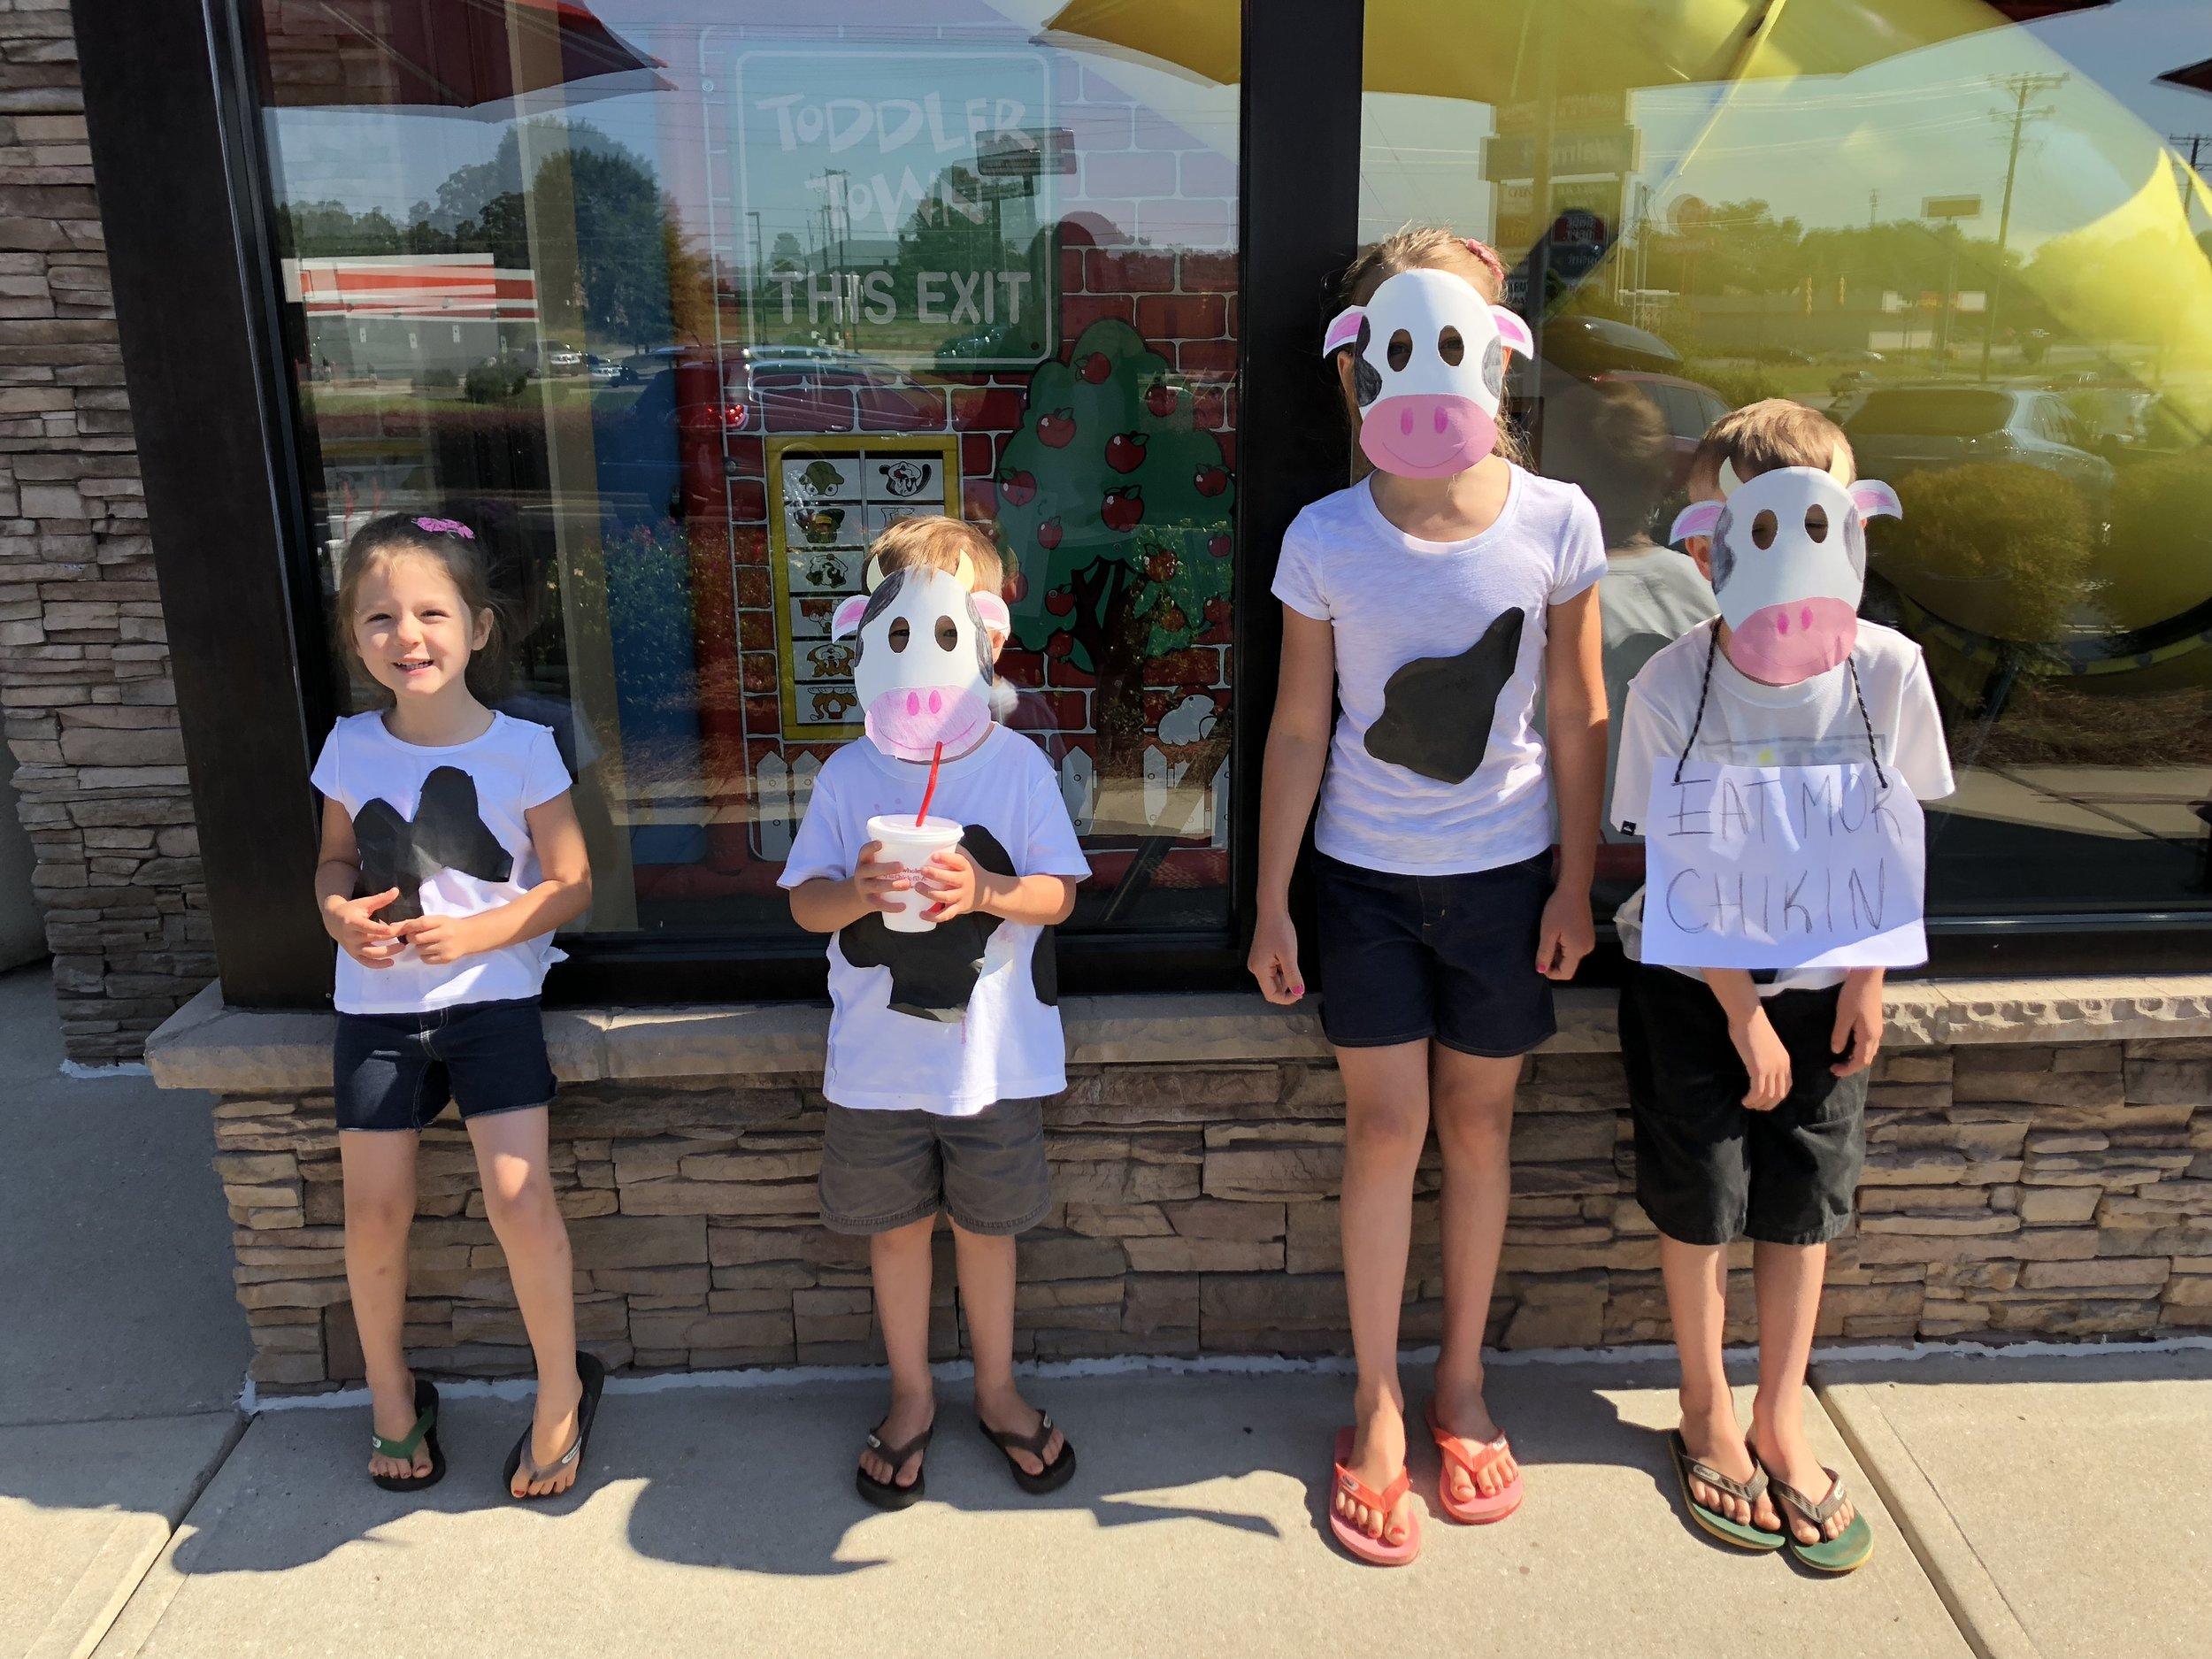 This was an interesting adventure!Cow appreciation day at Chick-fill-a.